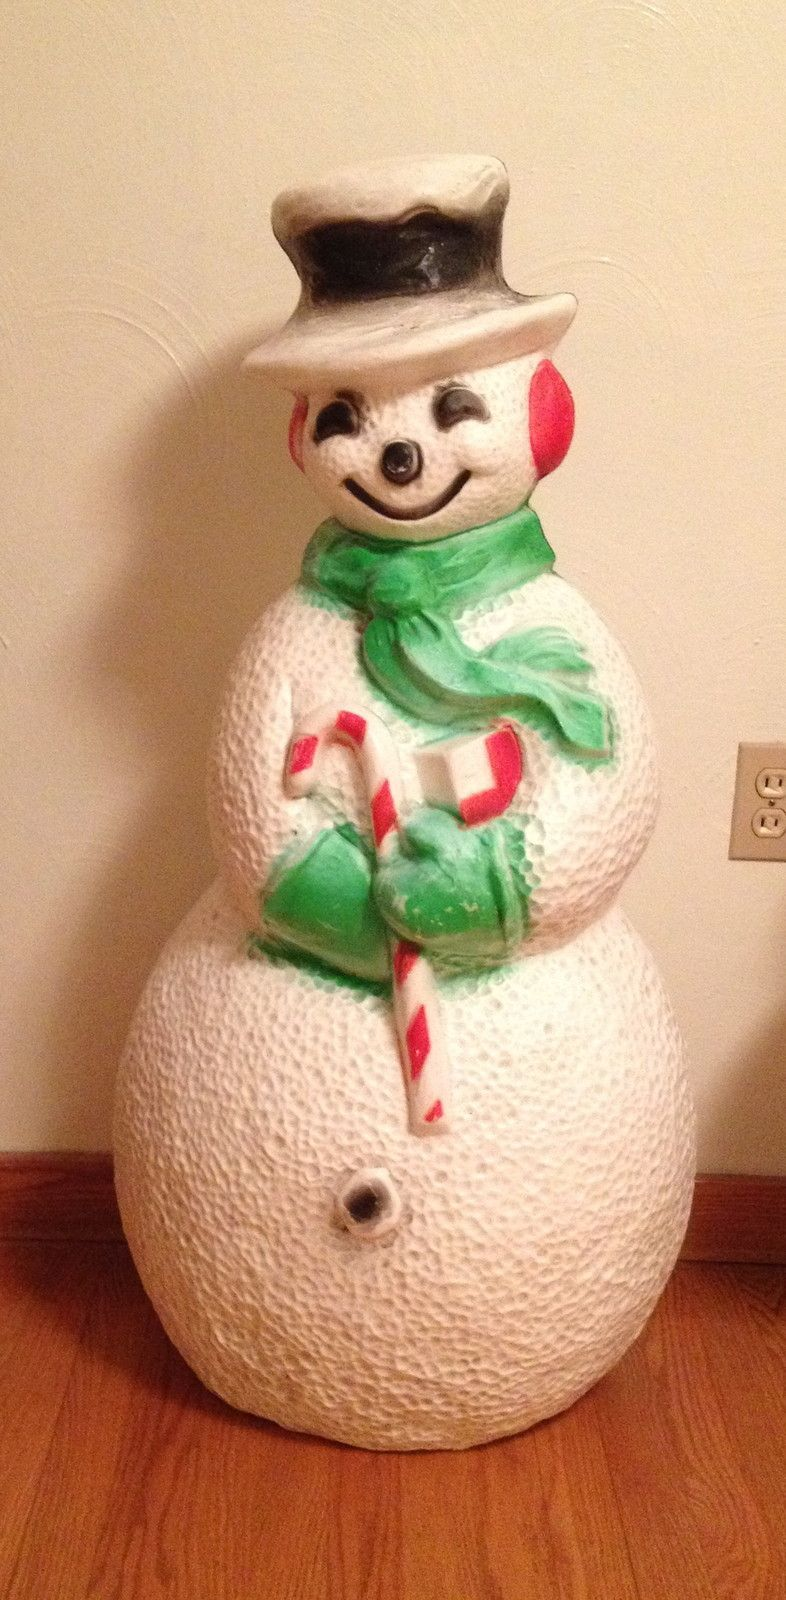 vintage christmas blow mold union snowman large light plastic lighted decoration ebay - Large Plastic Christmas Decorations